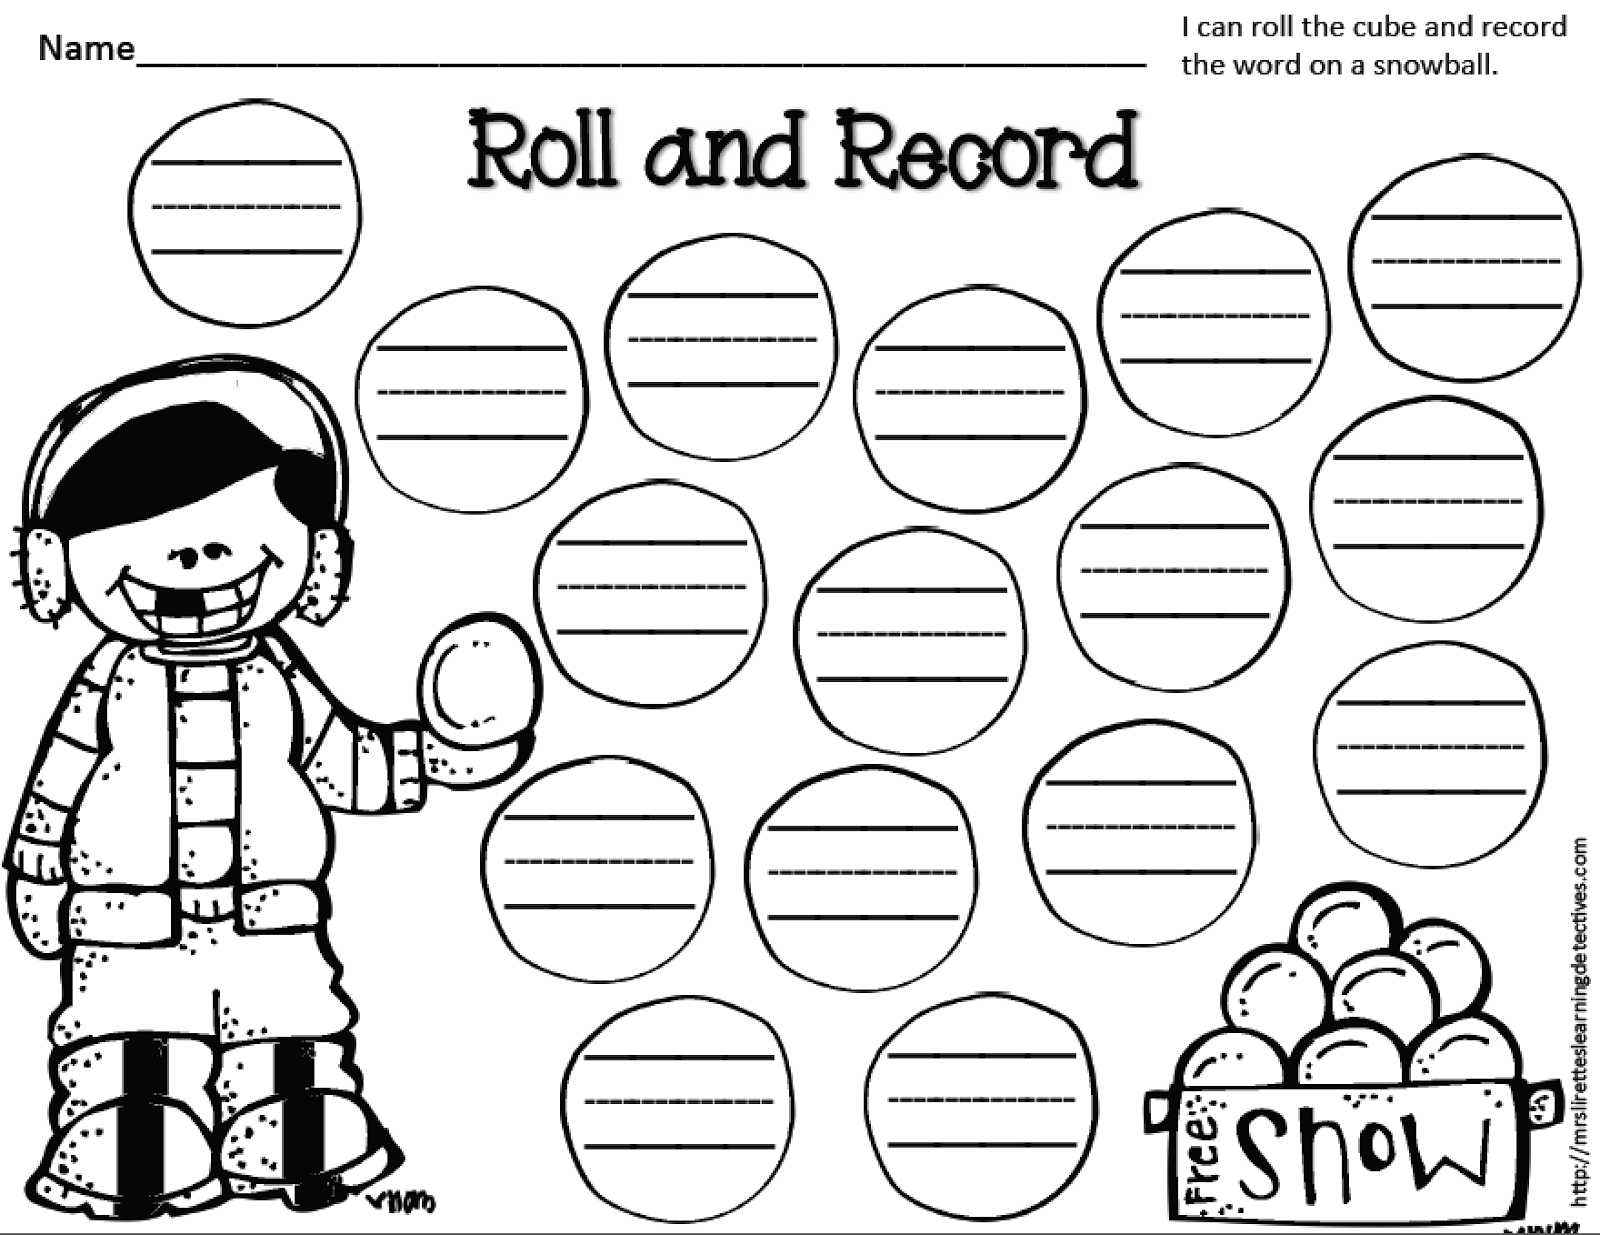 http://www.teacherspayteachers.com/Product/Winter-Roll-and-Record-FREE-1652513